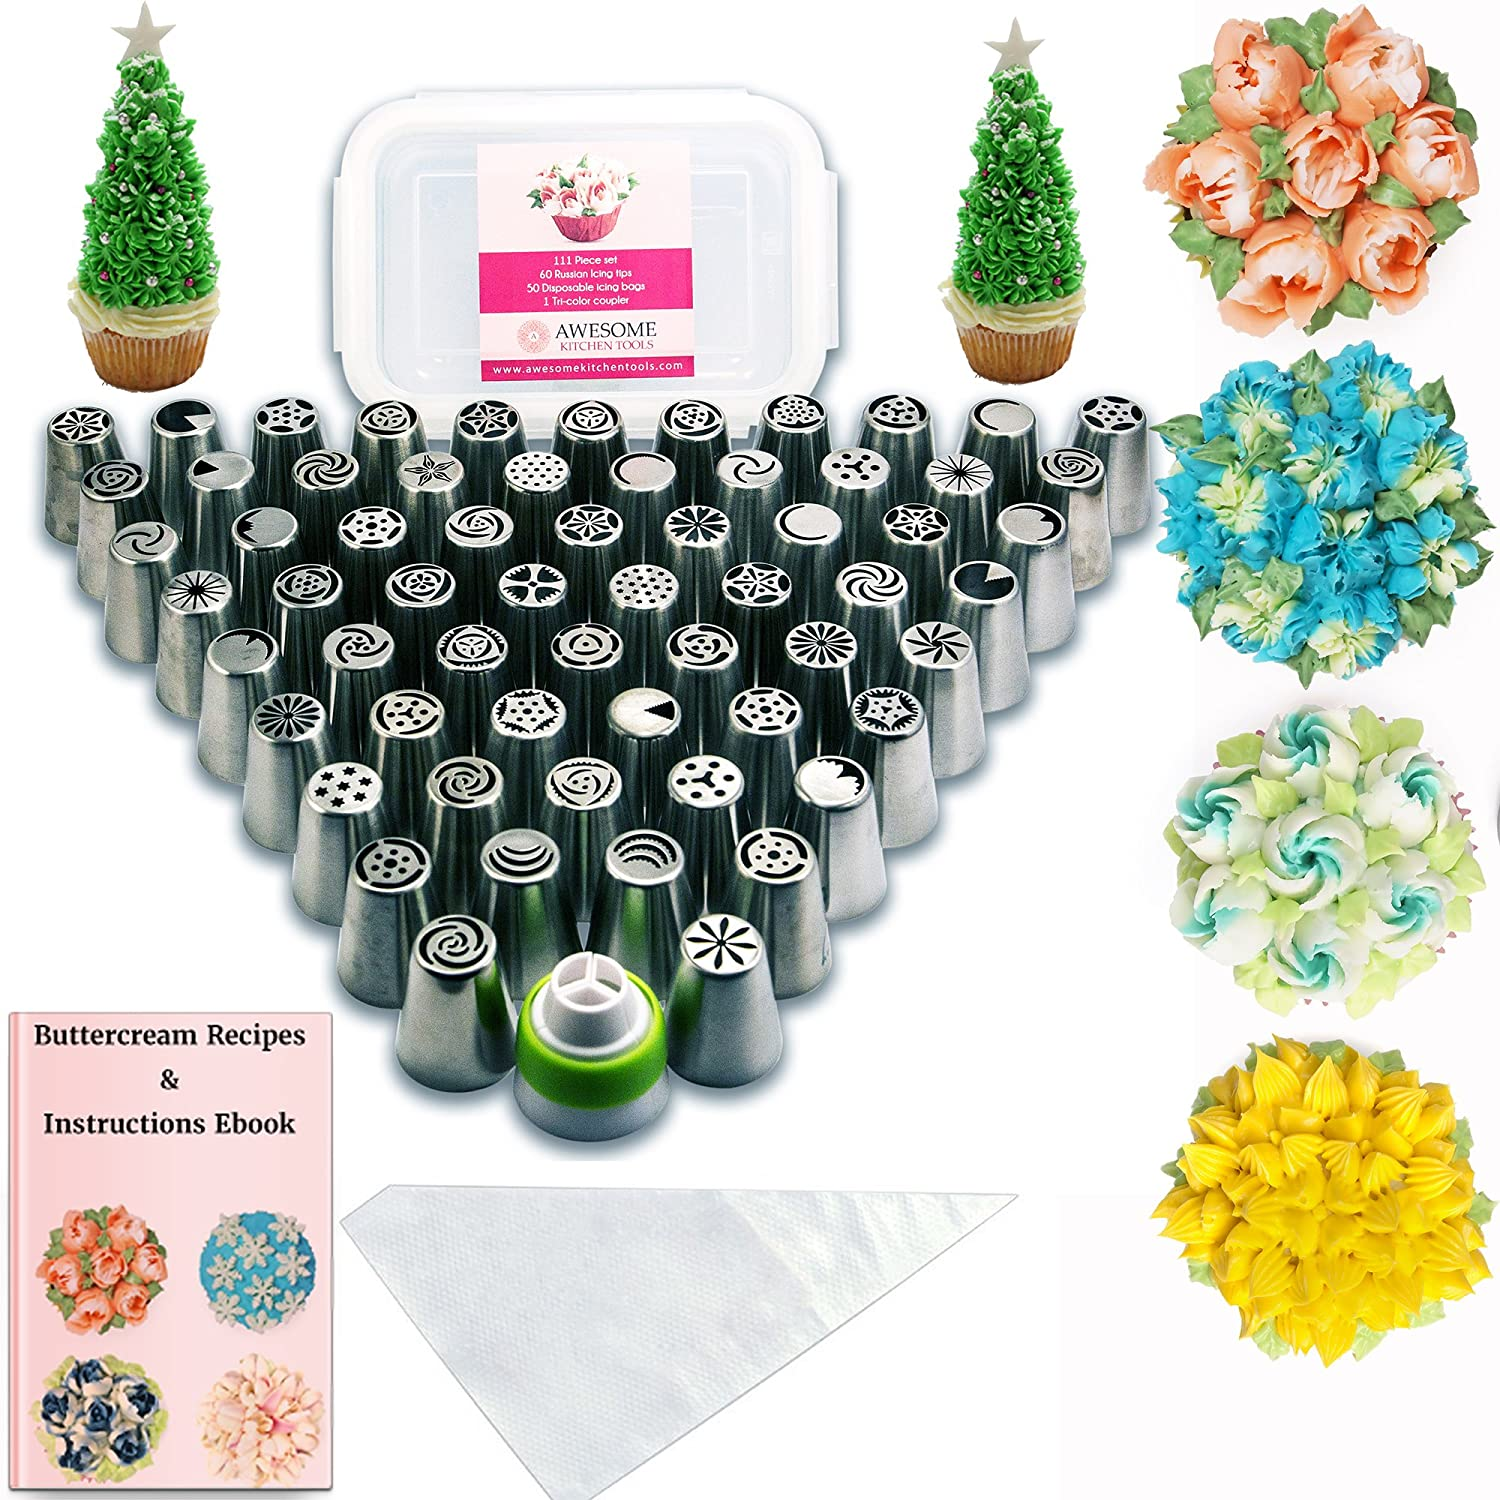 Russian Piping Tips Baking Supplies - 112 pcs - Complete set of 60 Cake Icing Frosting Nozzles + 50 Piping Bags + Coupler + Storage Box - Buttercream Flowers for Cupcake Decoration Bentrist Baking Boys DS0001